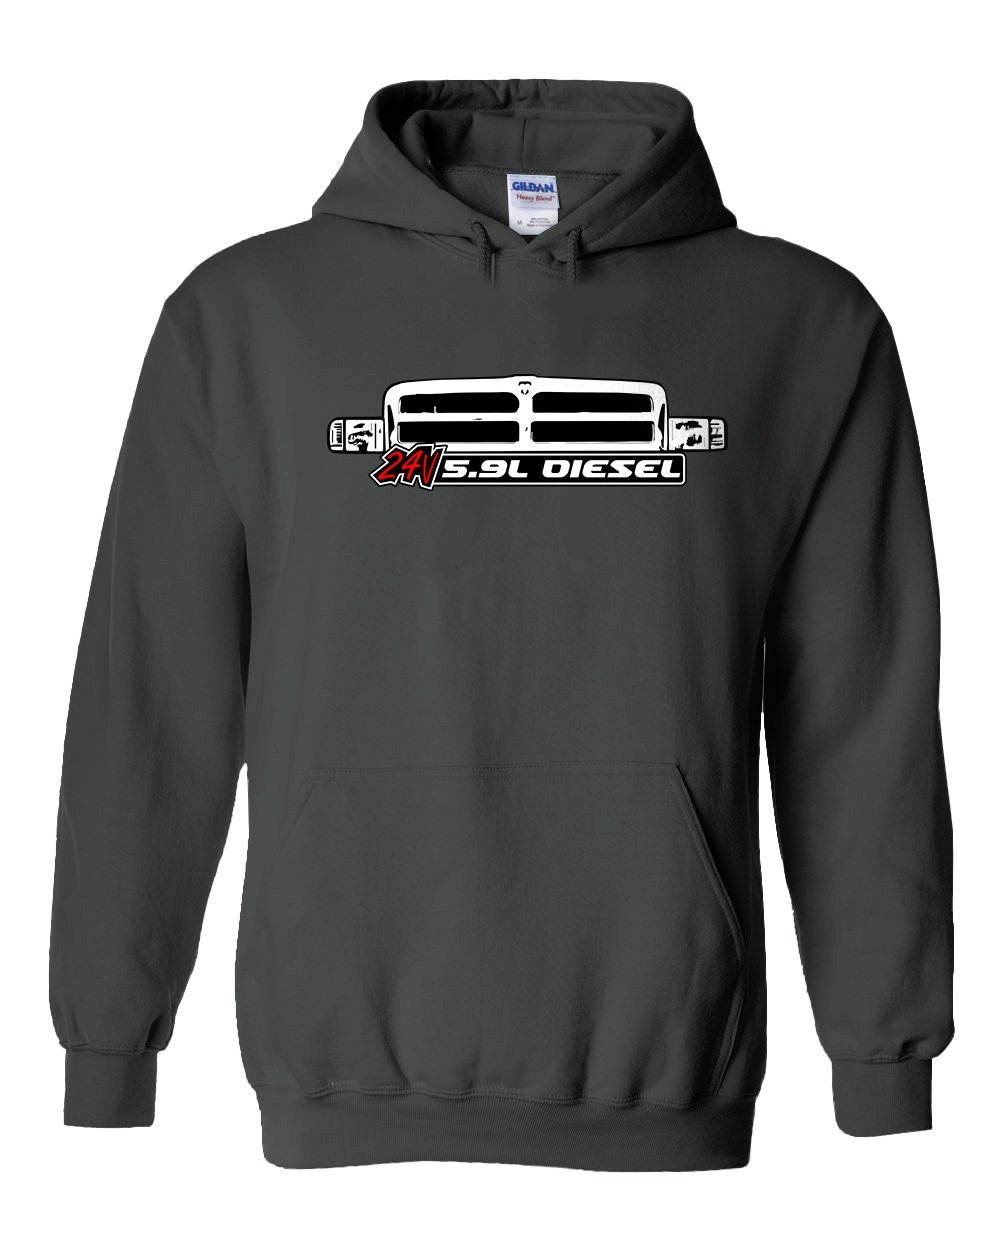 Cummins 24v 5.9 Diesel Hoodie Sweatshirt With 2nd Second Gen Grille T-Shirt - Aggressive Thread Diesel Truck T-Shirts